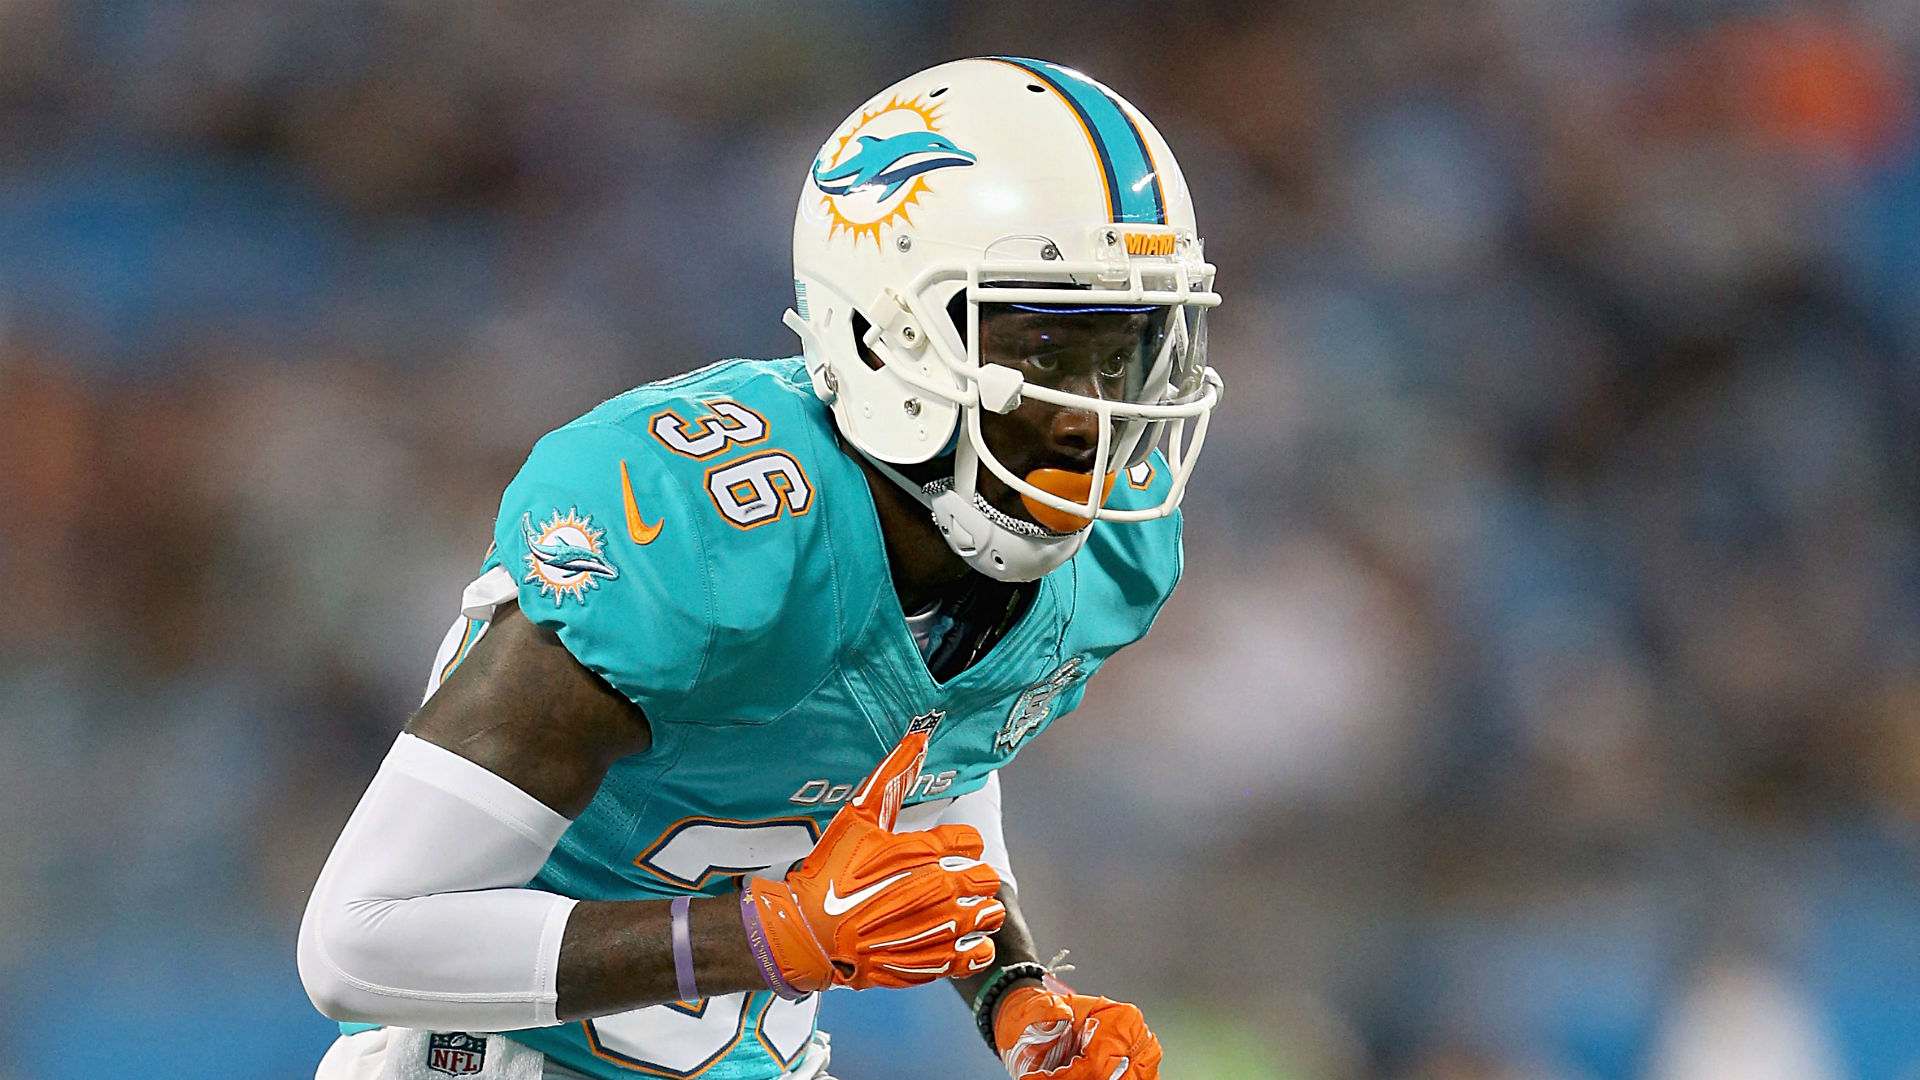 Tony Lippett tears Achilles, will have season-ending surgery